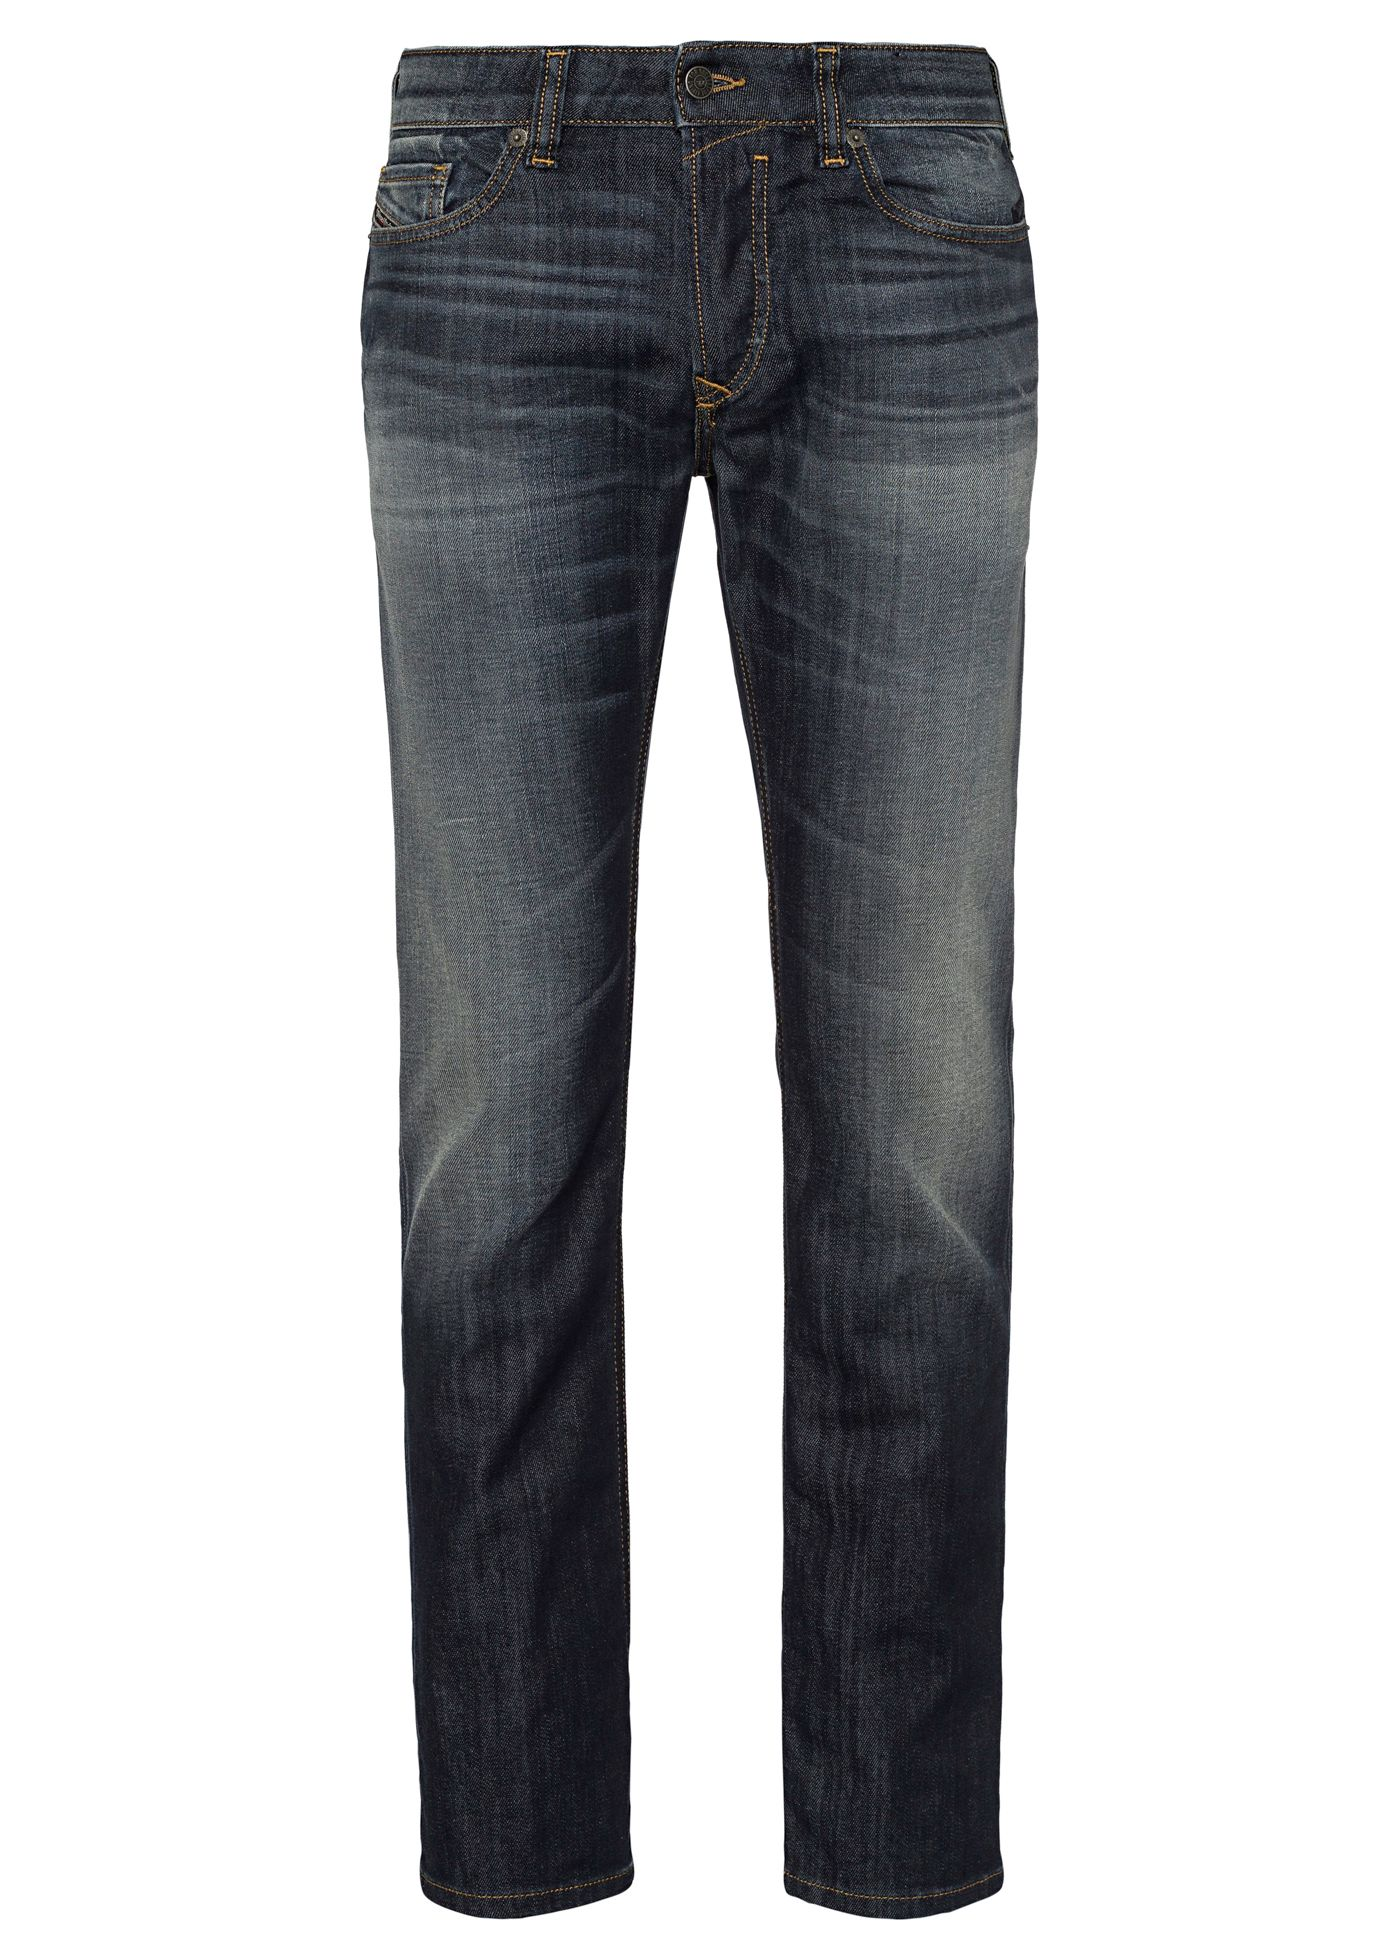 SAFADO-X L.30 TROUSERS image number 0